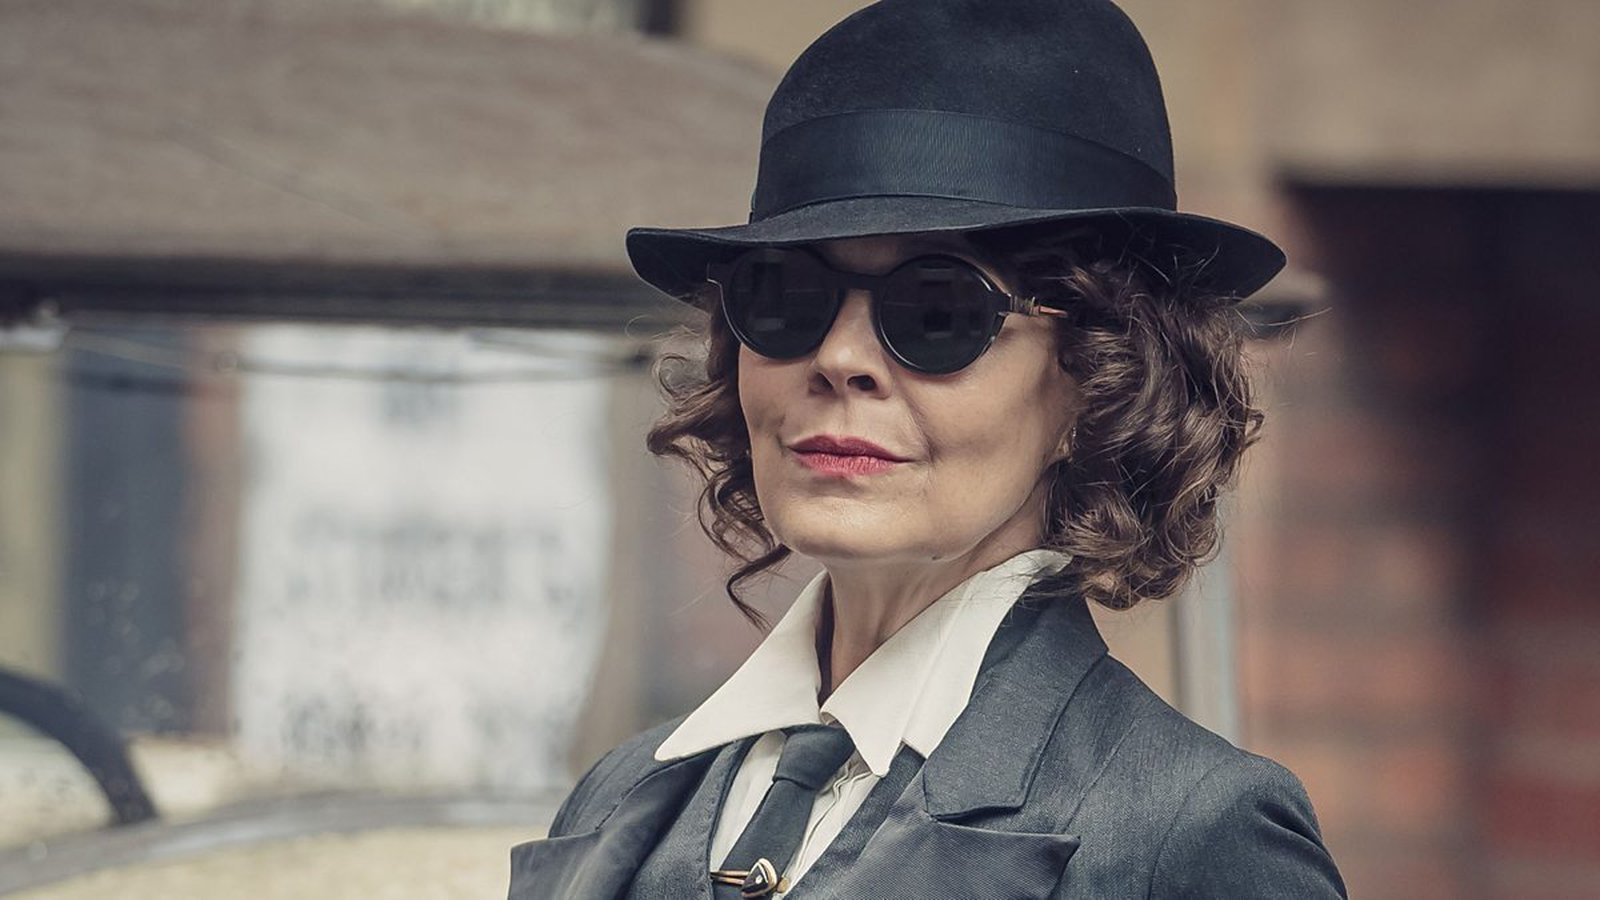 Why Polly Gray from Peaky Blinders is a feminist icon